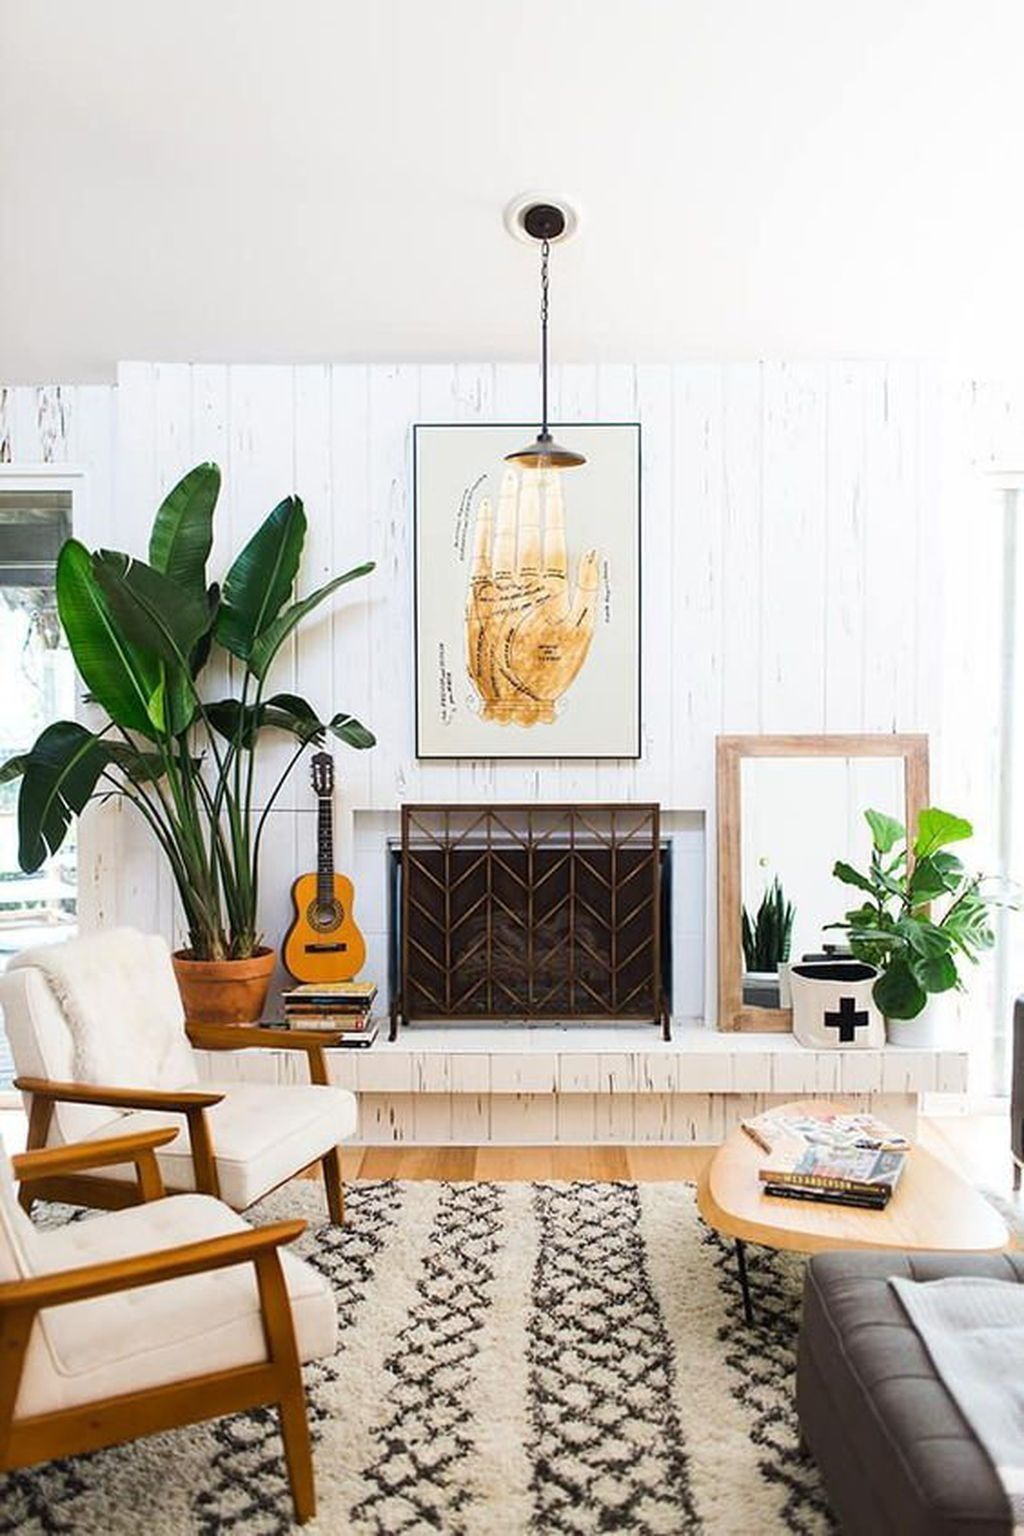 36 Neat Living Room Ideas For Small Space   Home.   Pinterest ...